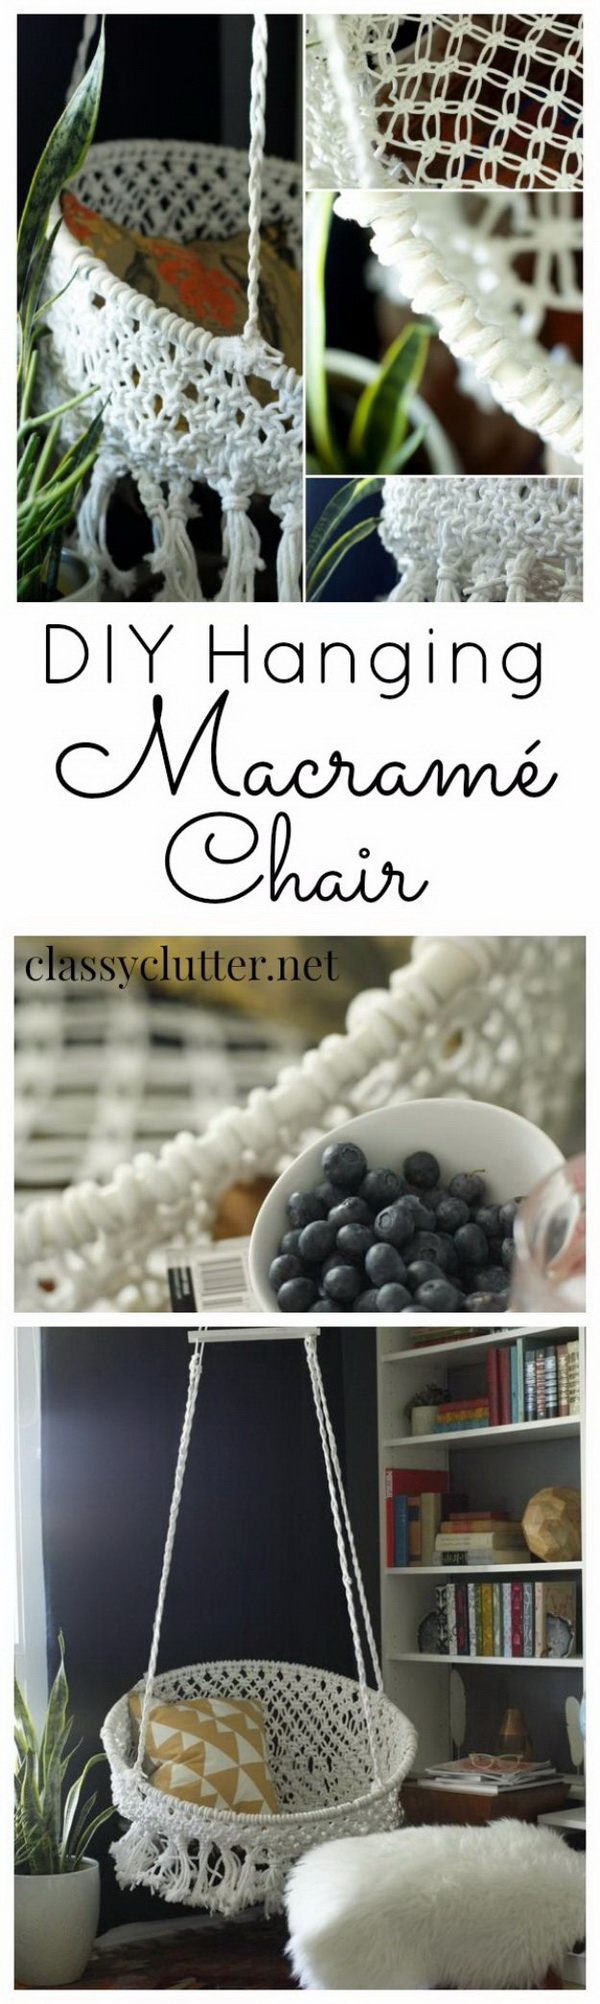 DIY Hanging Macrame Chair: Add a bit of more cozy and inviting flair to your room with this DIY project. You can macrame this boho-chic hanging chair with clothesline and a hoola hoop.